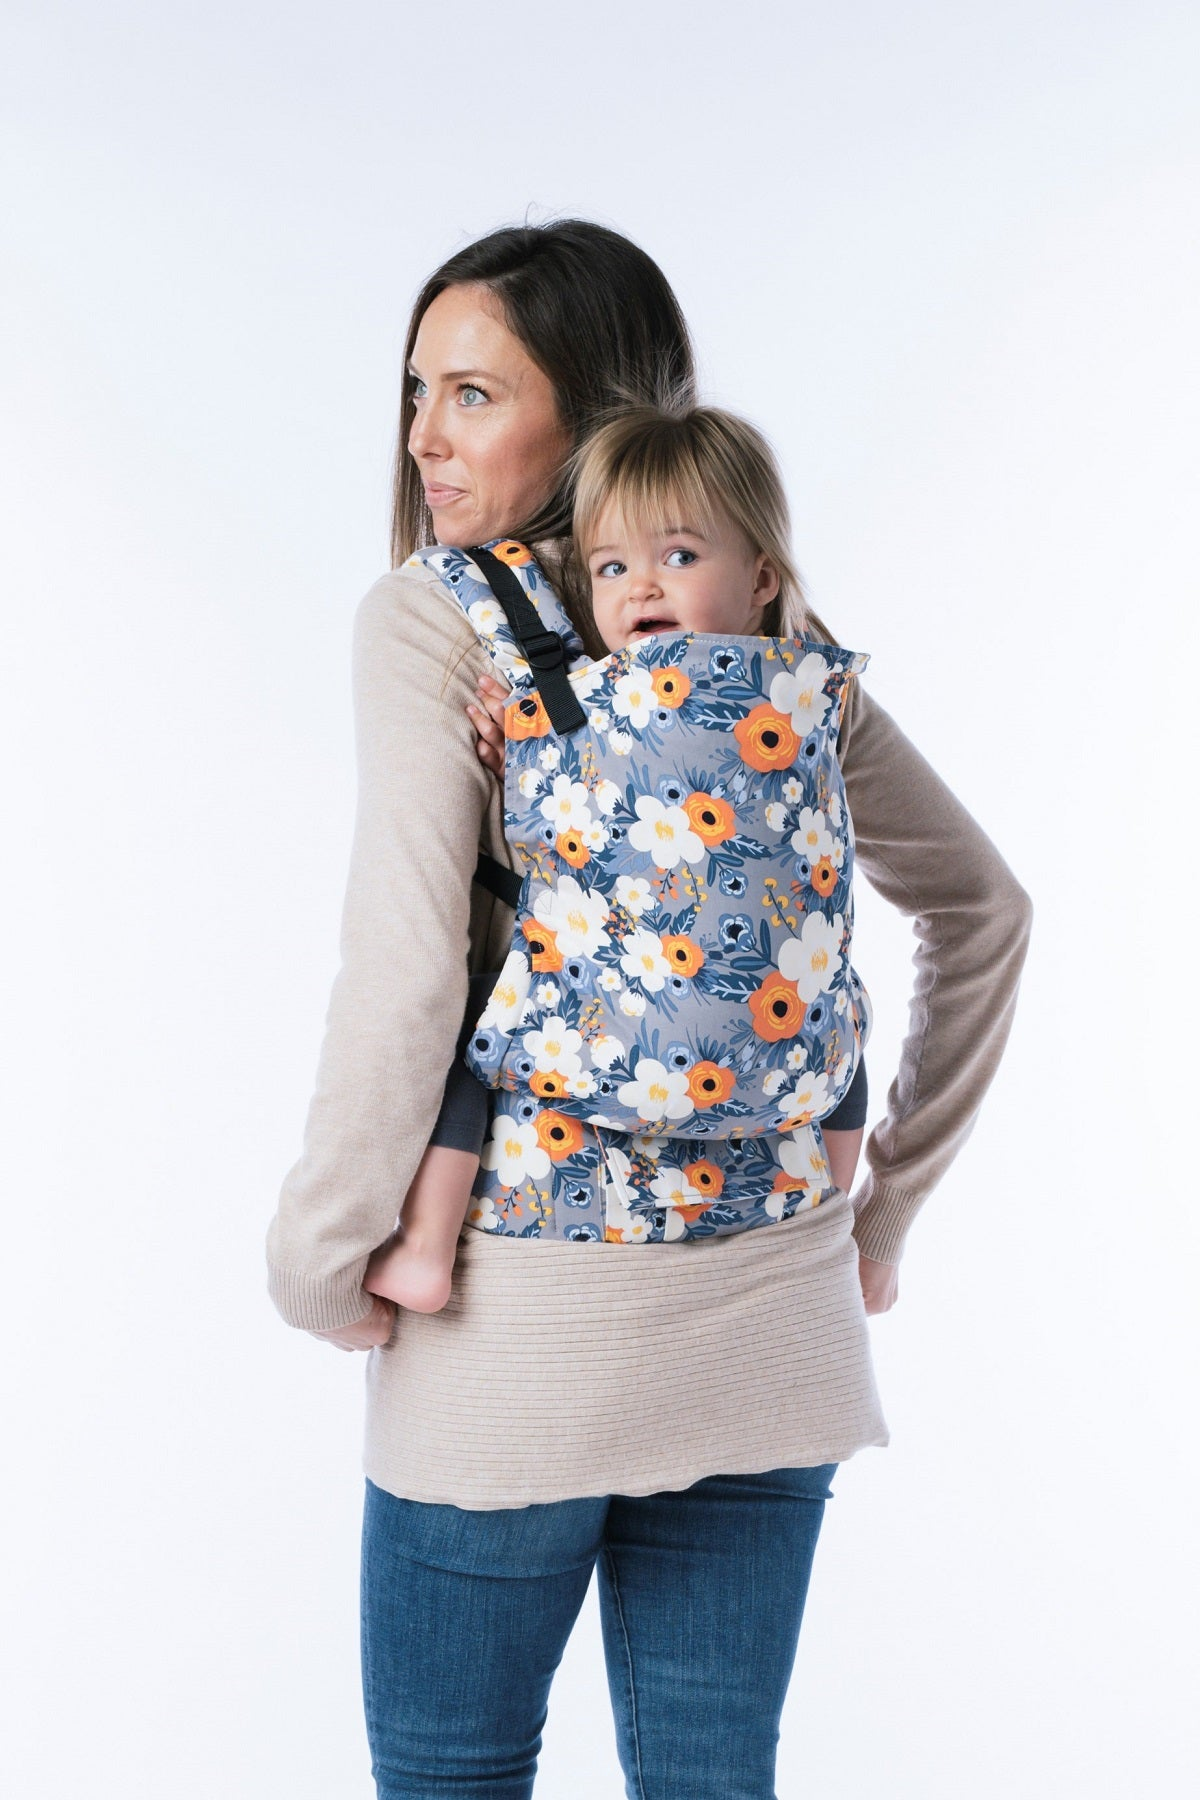 French Marigold - Tula Toddler Carrier - Baby Tula